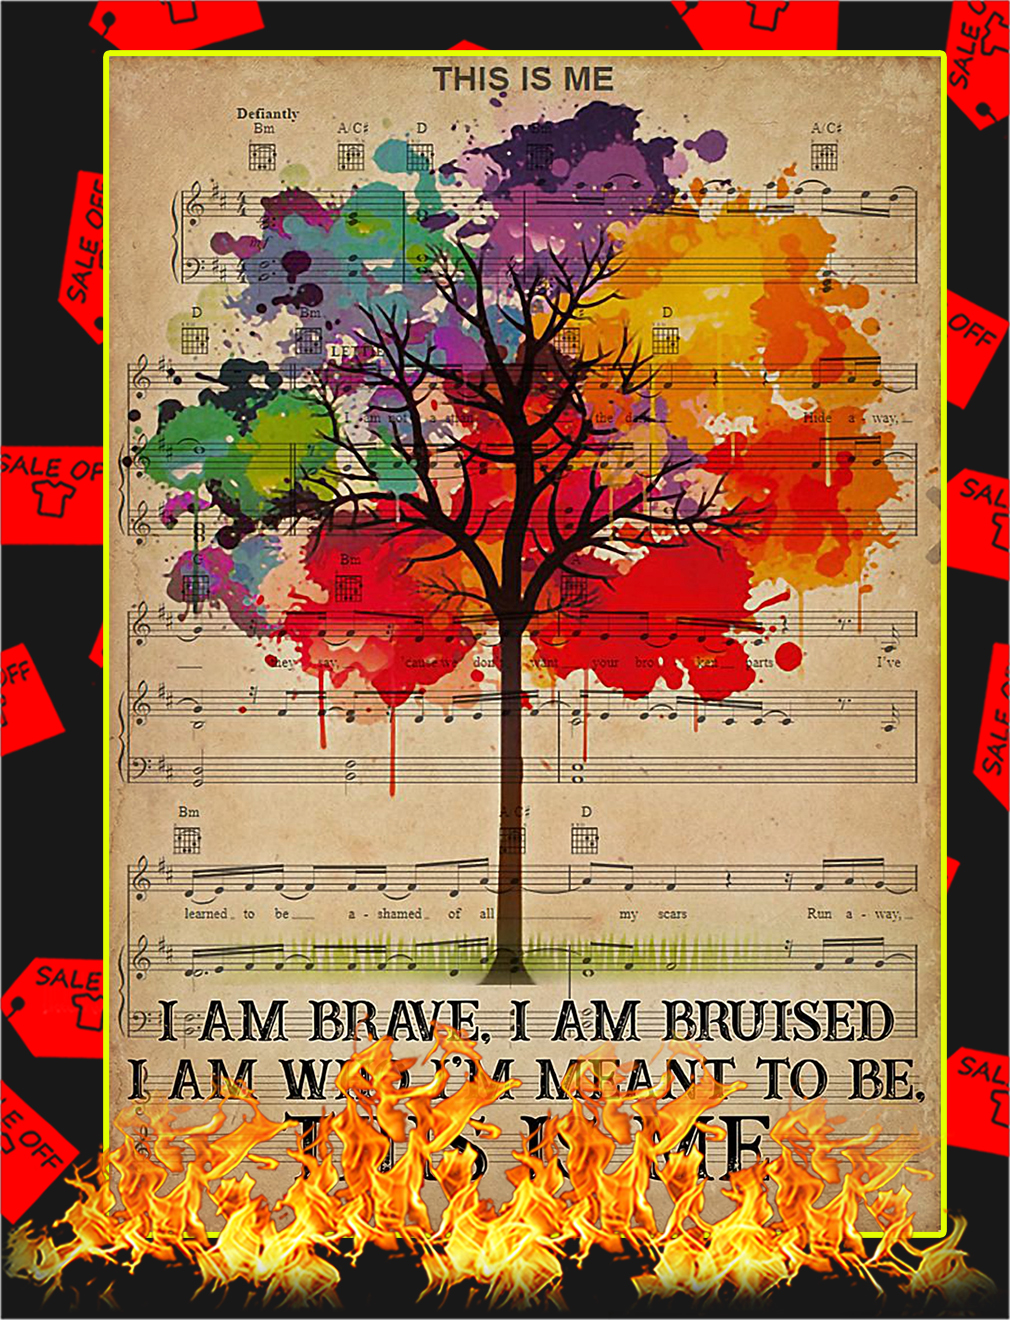 LGBT I am brave I am bruised poster - A4